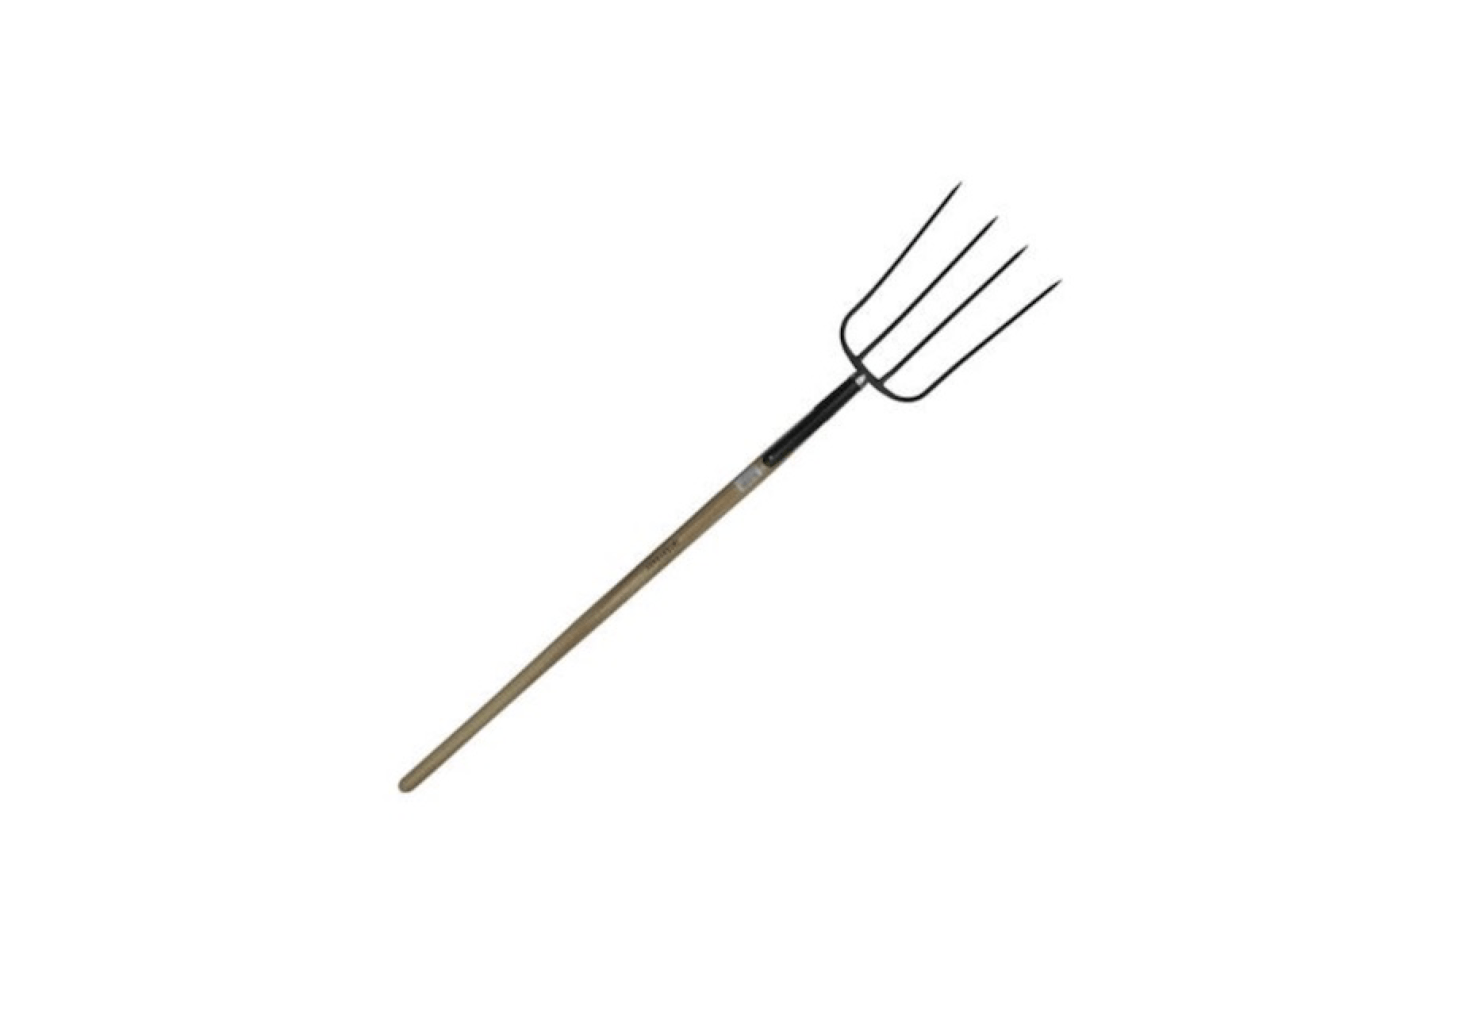 A four-prong Taifun Manure Fork is €.99 from Agridirect.